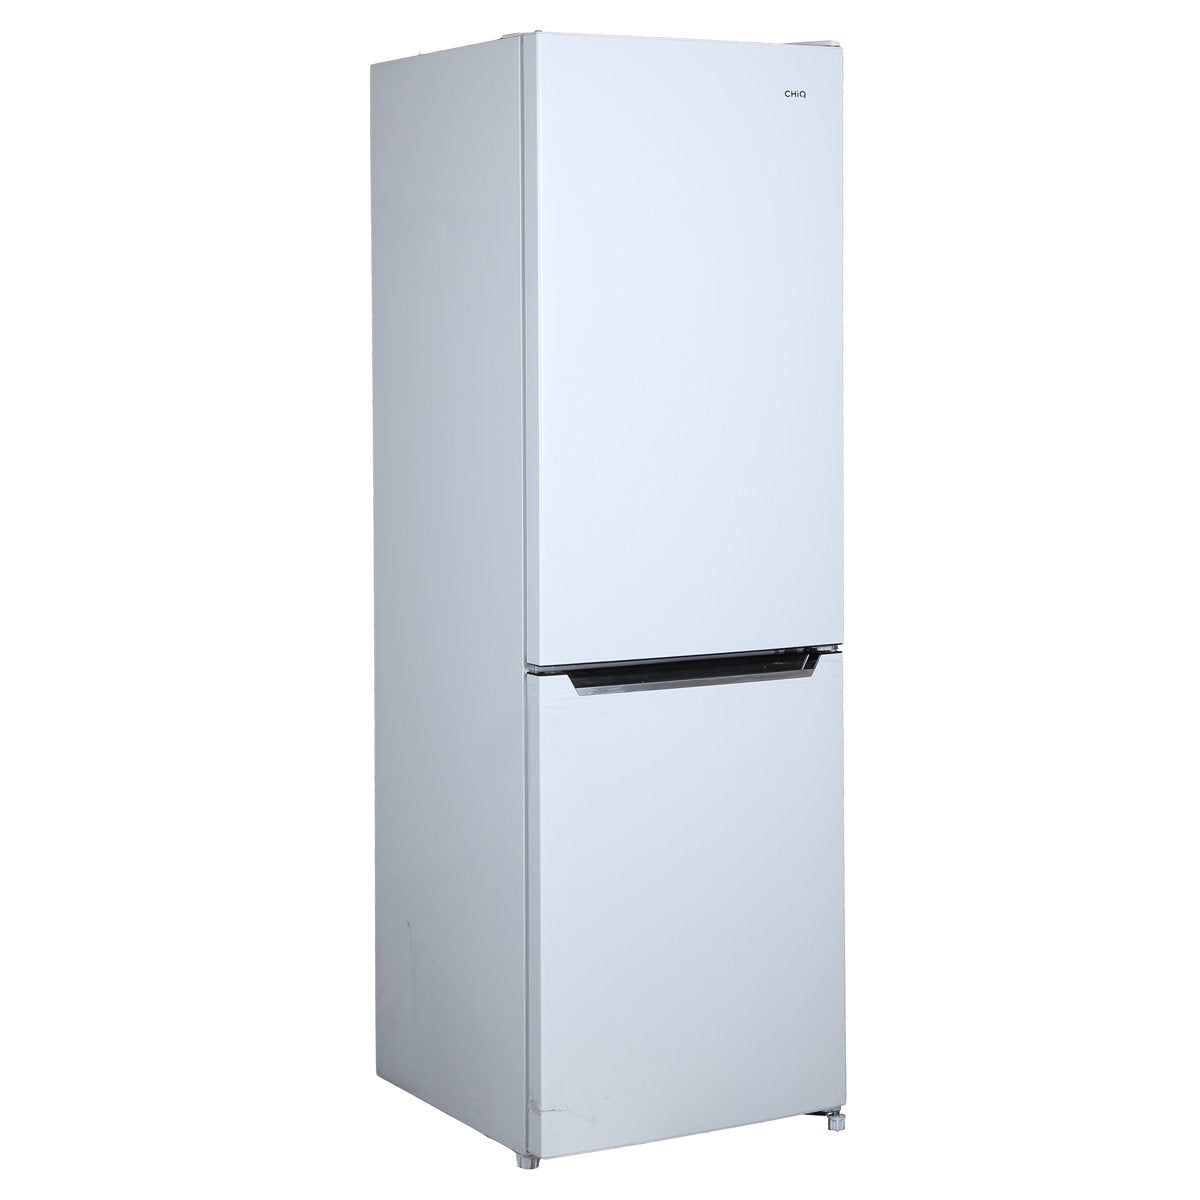 CHiQ CBM251W 251L Bottom Mount Fridge - Bargain Home Appliances